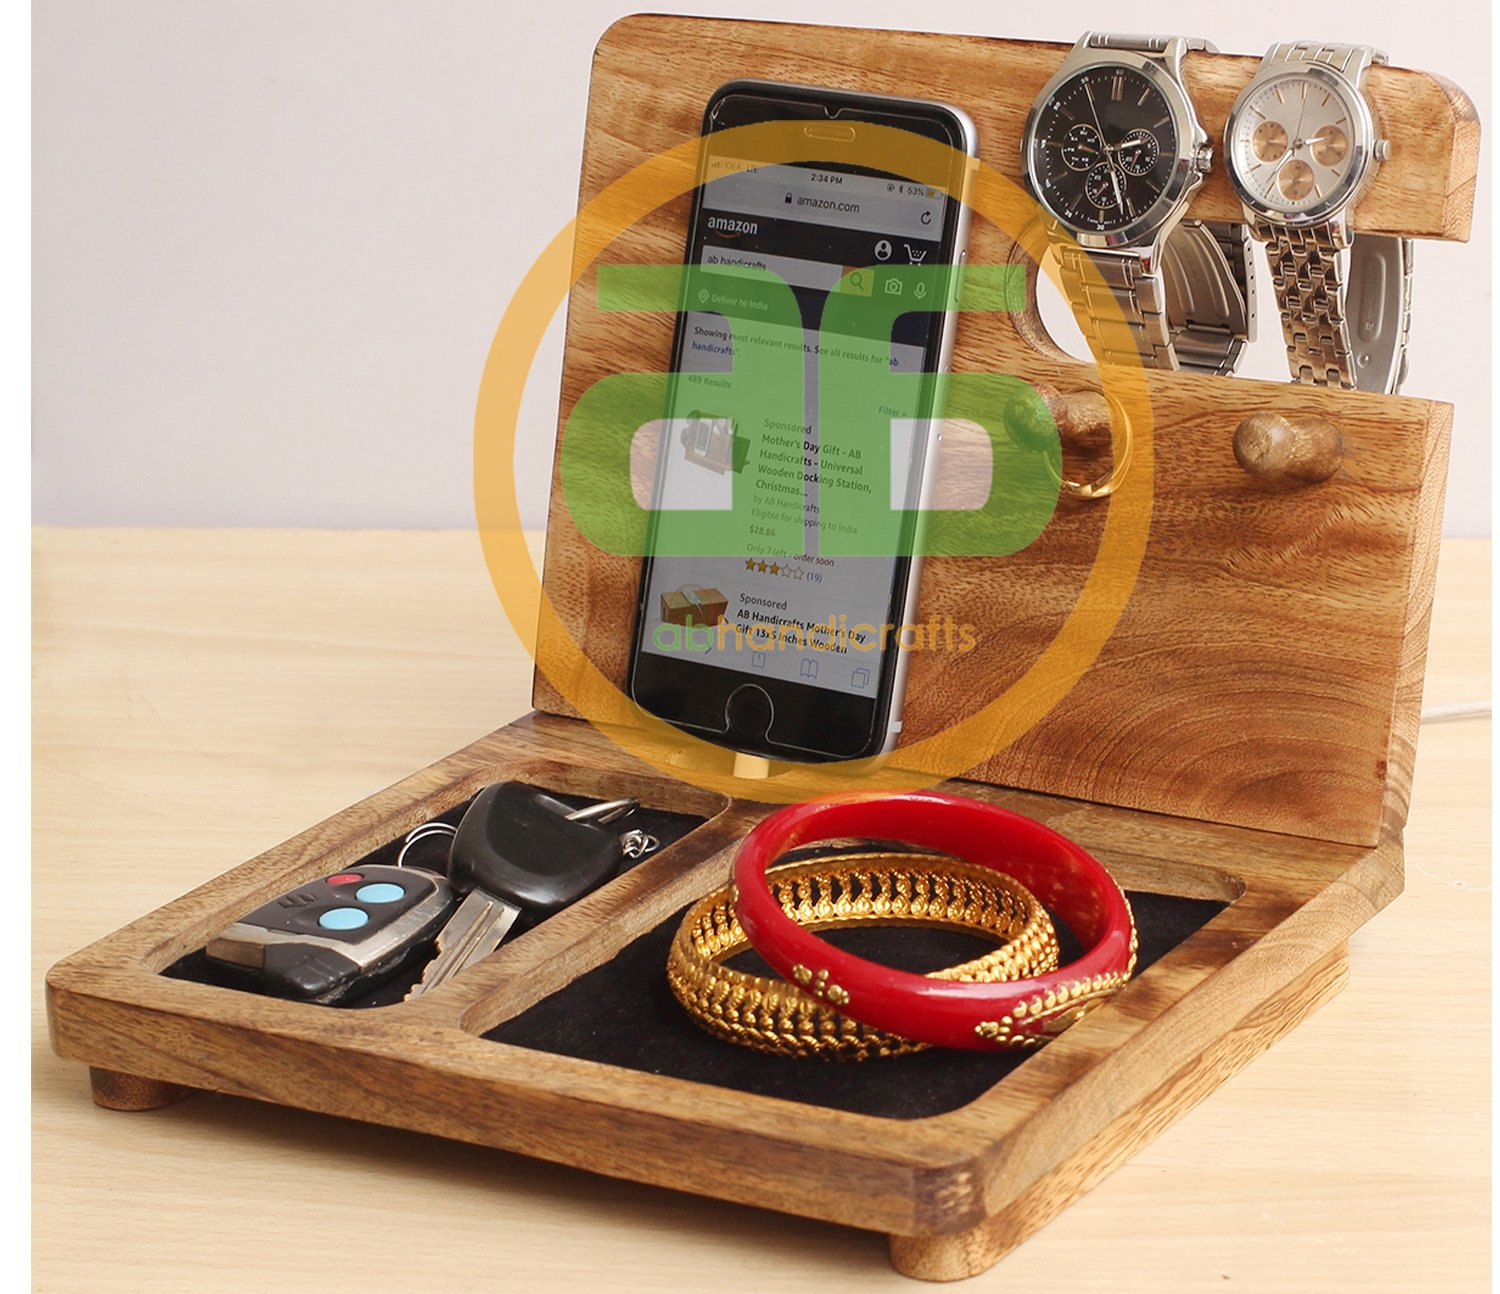 b052fa20176f durable service Wooden Docking Station - Iphone Charging Station - Wooden  Phone Stand